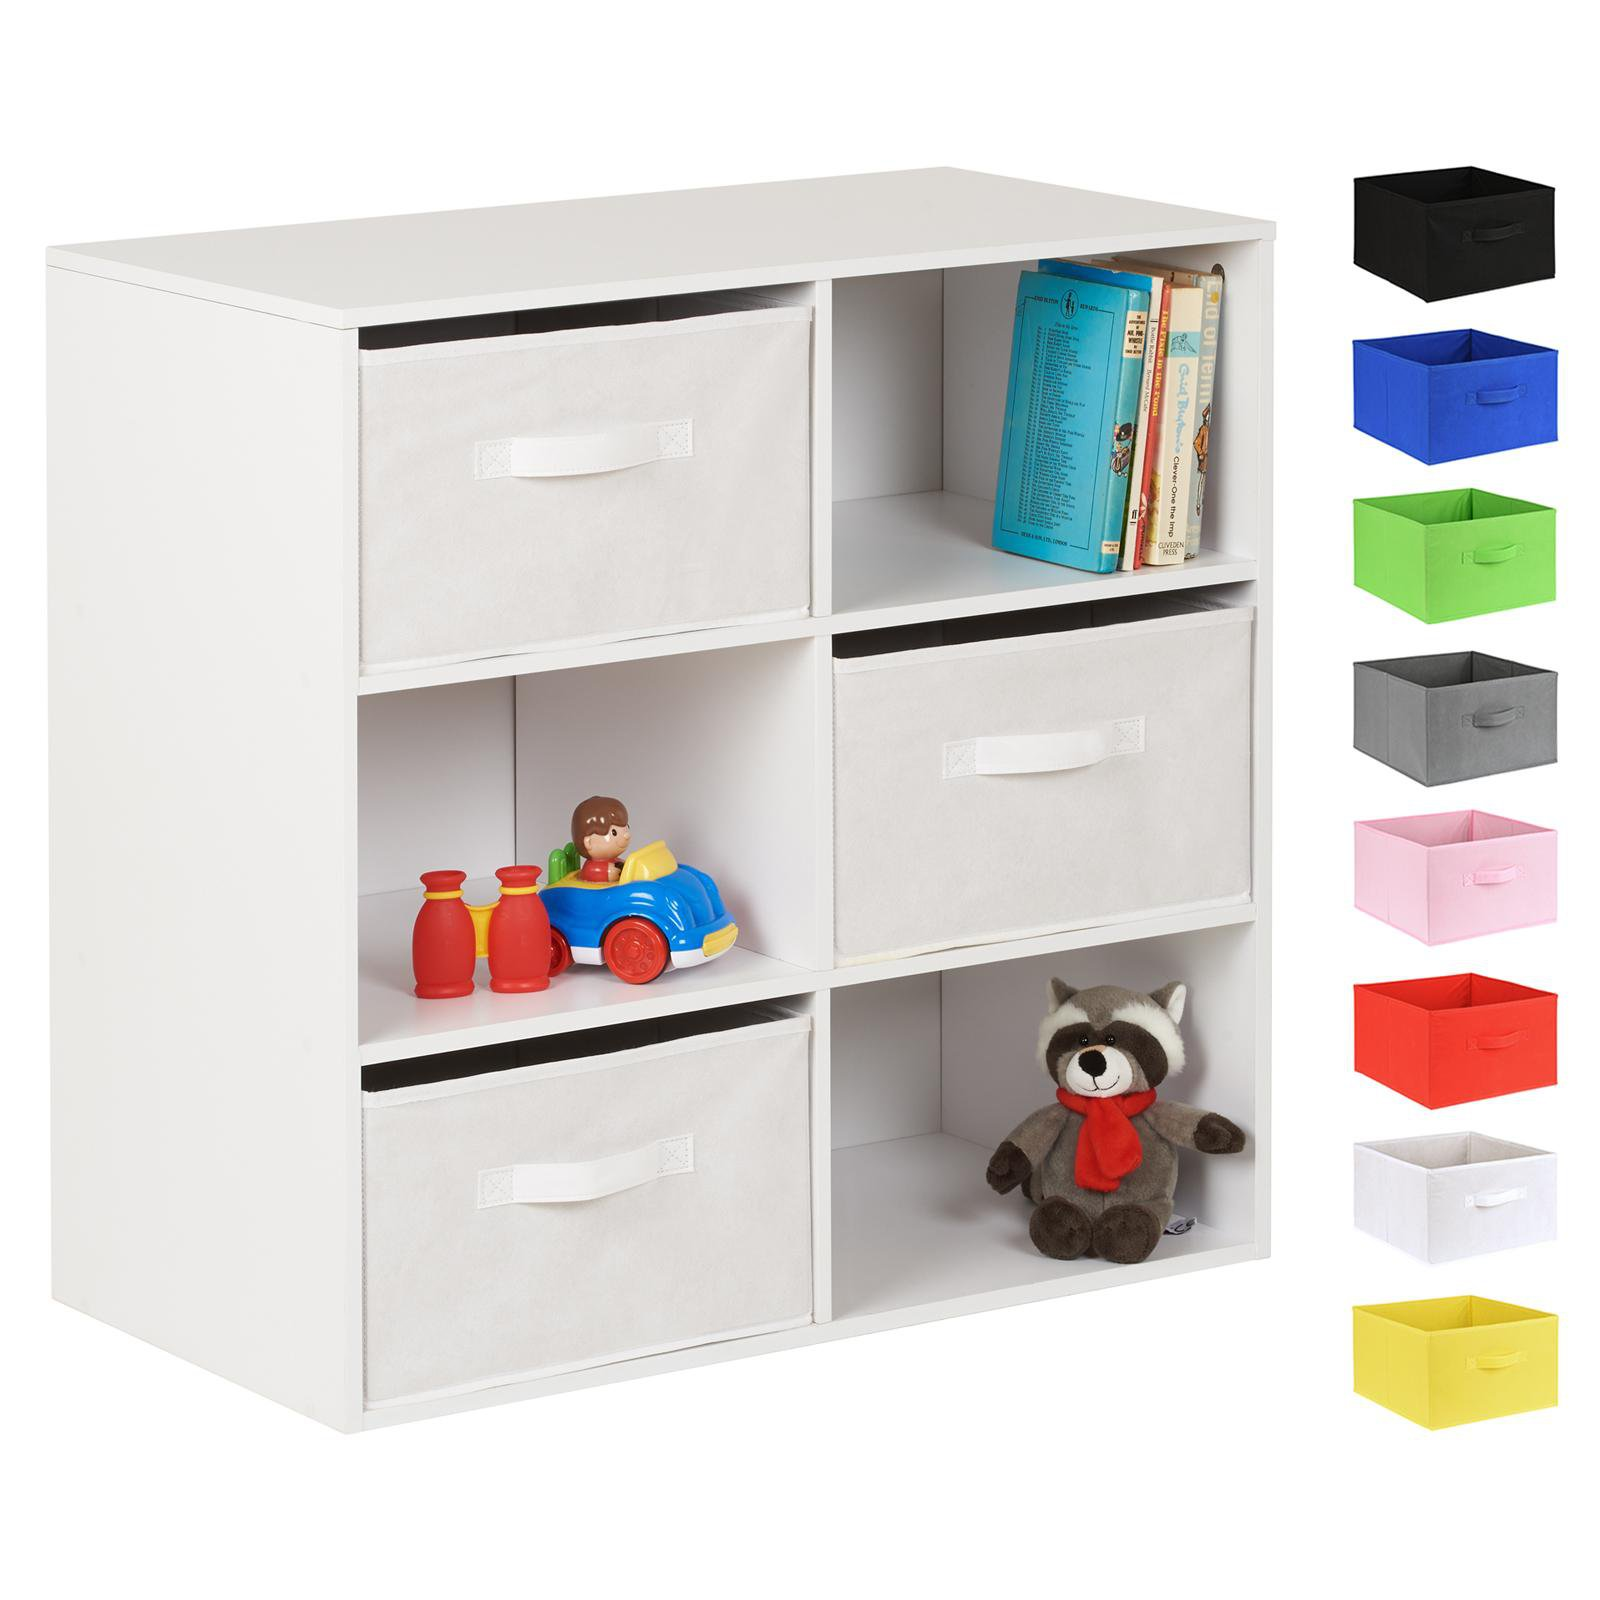 image-Hartleys White 6 Cube Kids Storage Unit & 3 Handled Box Drawers - White